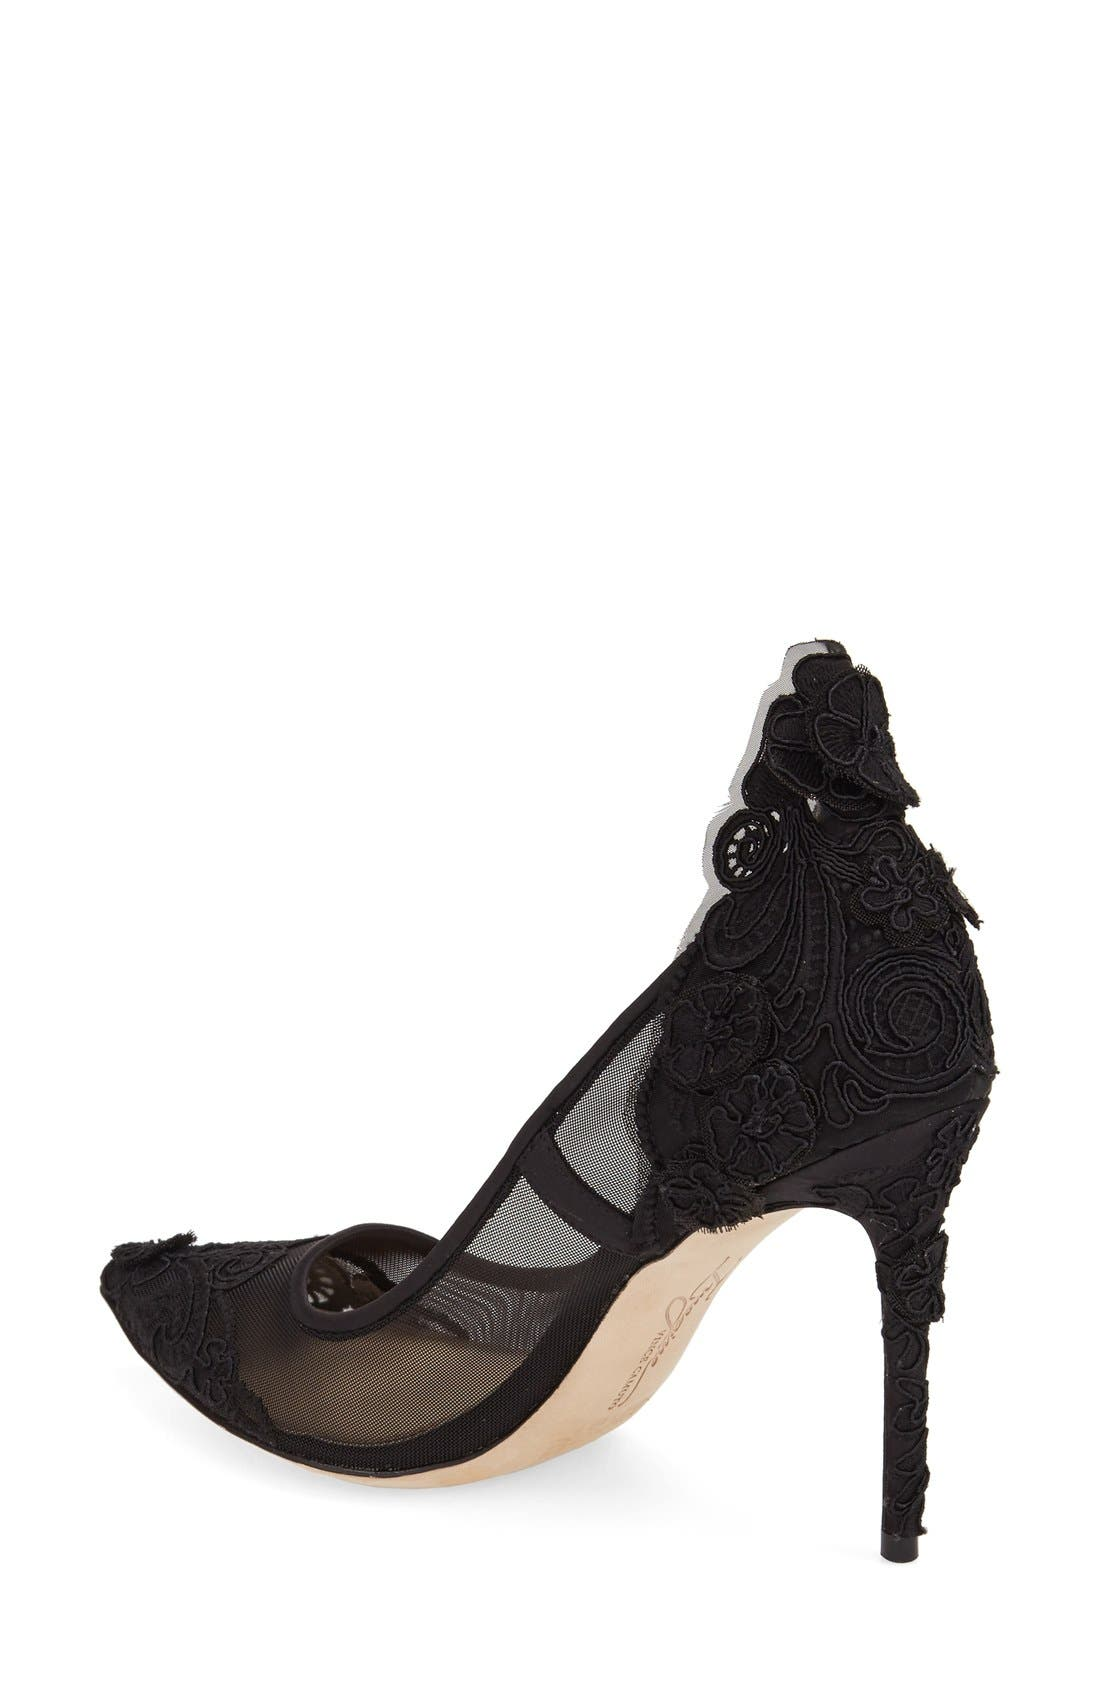 IMAGINE BY VINCE CAMUTO, 'Ophelia' Pointy Toe Pump, Alternate thumbnail 2, color, 001